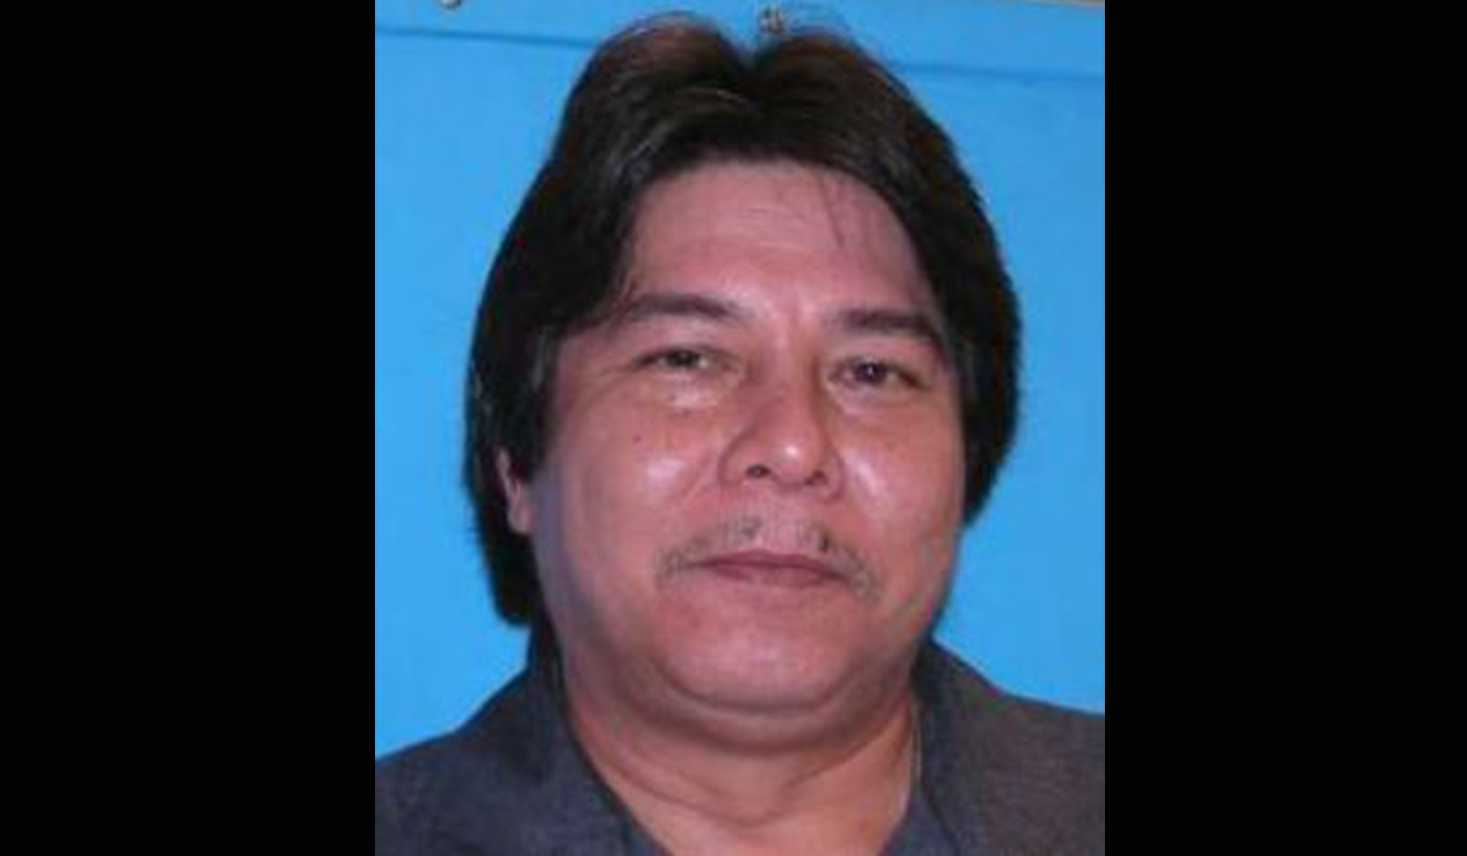 'Violent psychopath' sought after escaping Hawaii hospital, boarding flight